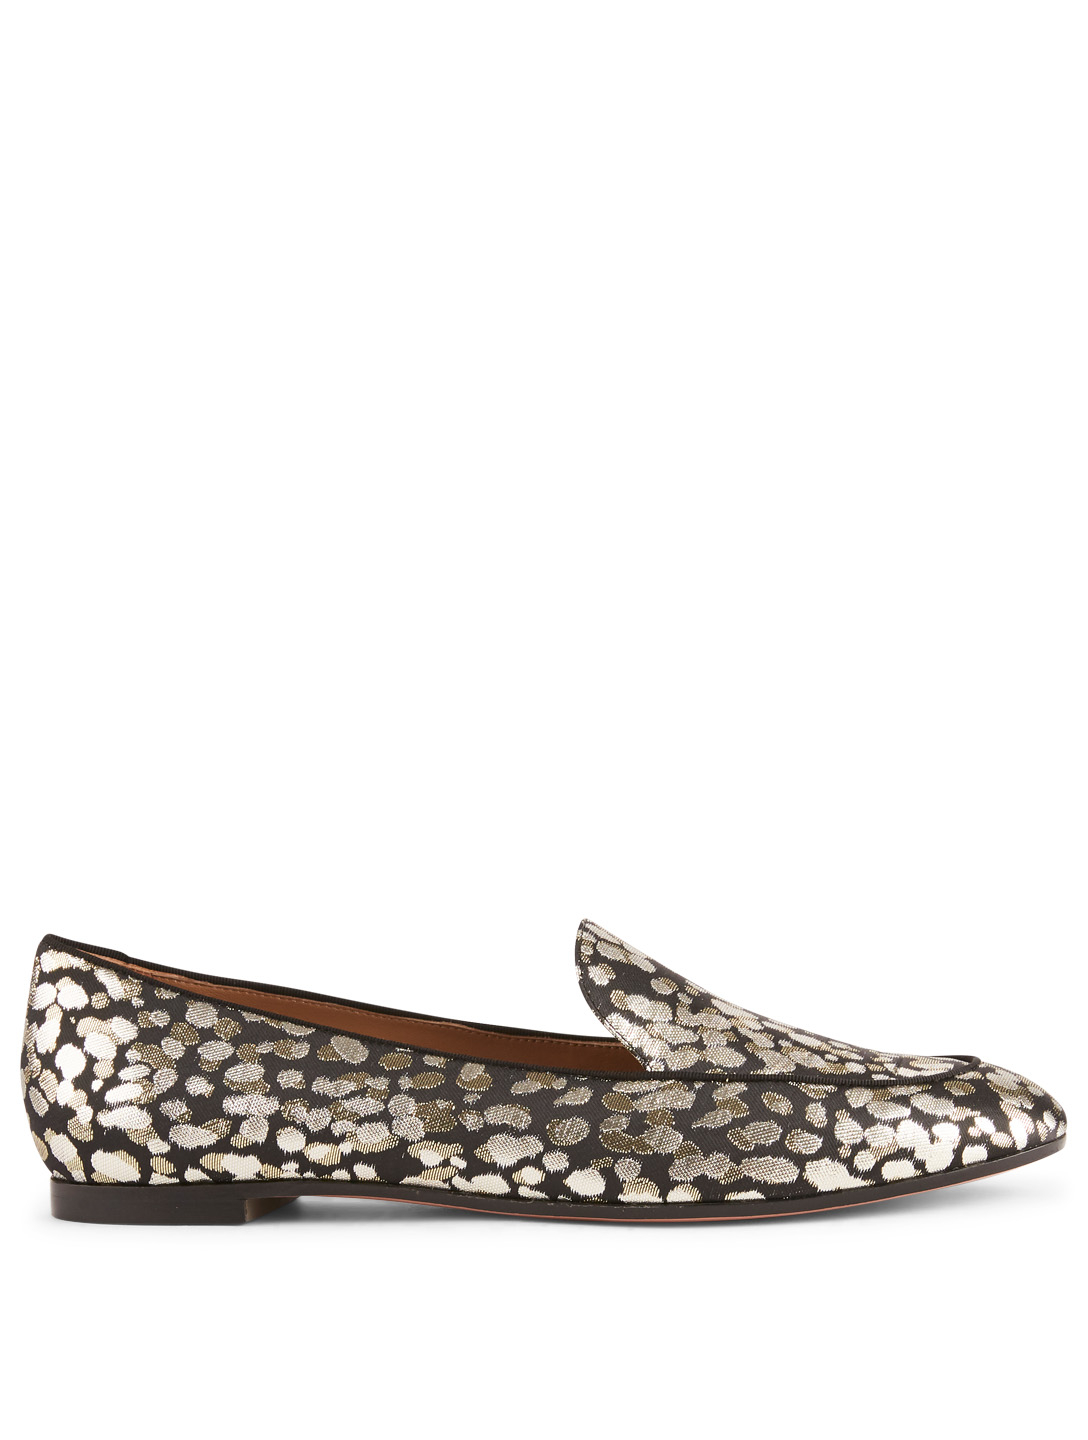 AQUAZZURA Purist Moccasins In Cheetah Print Womens Black